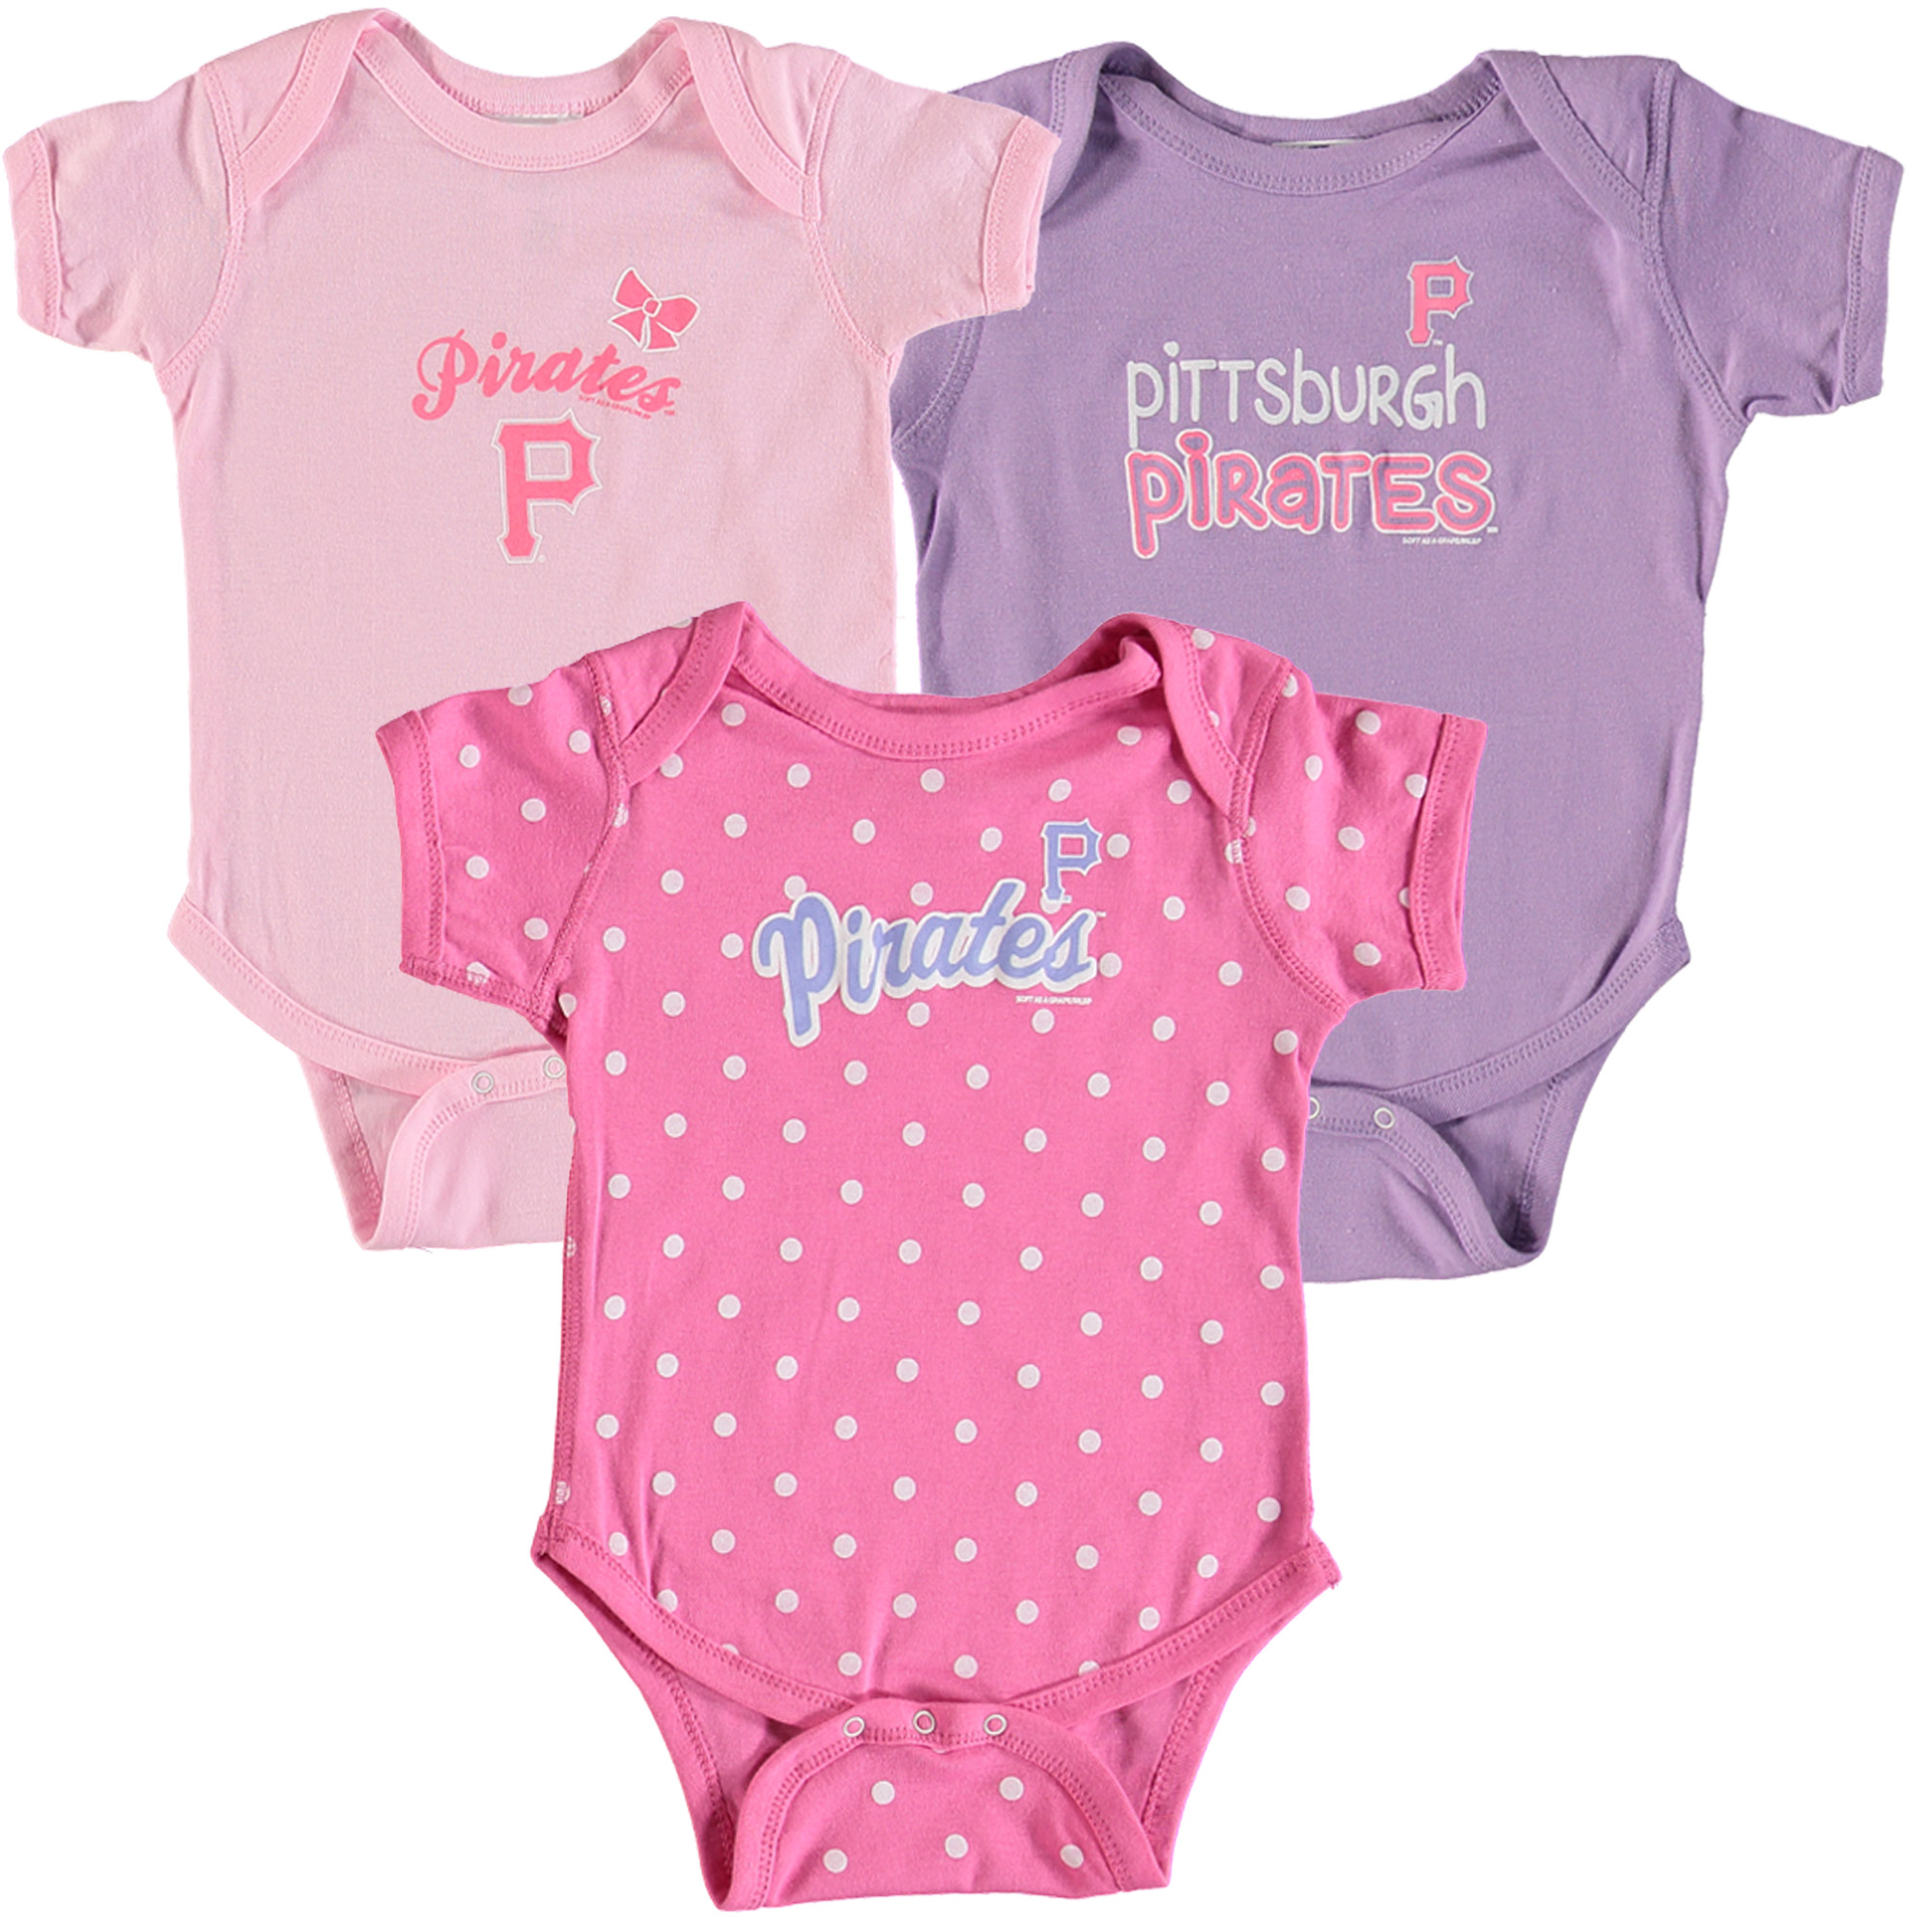 Pittsburgh Pirates Soft as a Grape Girls Infant 3-Pack Rookie Bodysuit Set - Pink/Purple